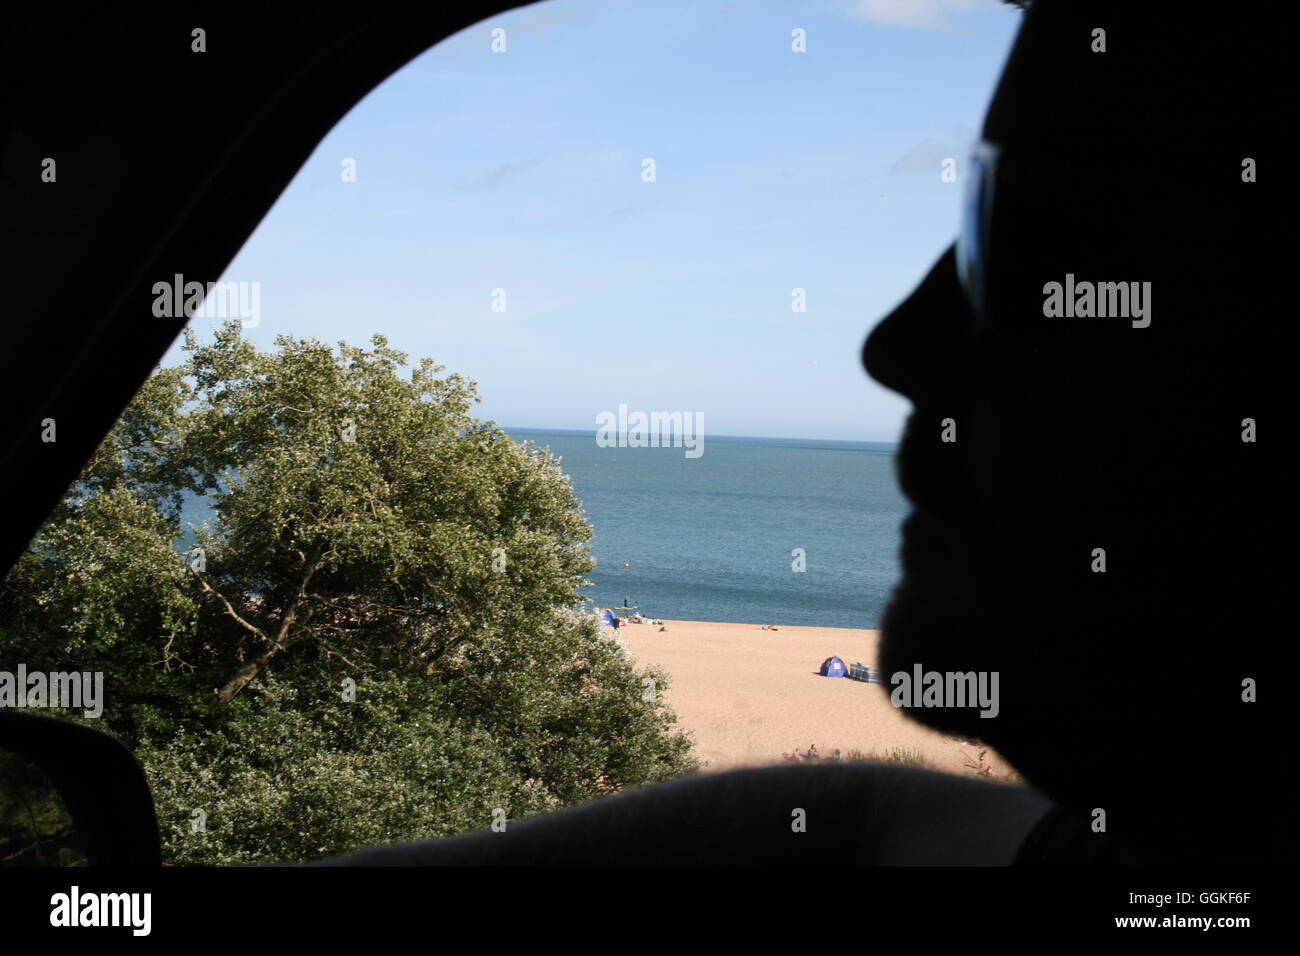 mans silhouette in car window with beach scene in the background - Stock Image